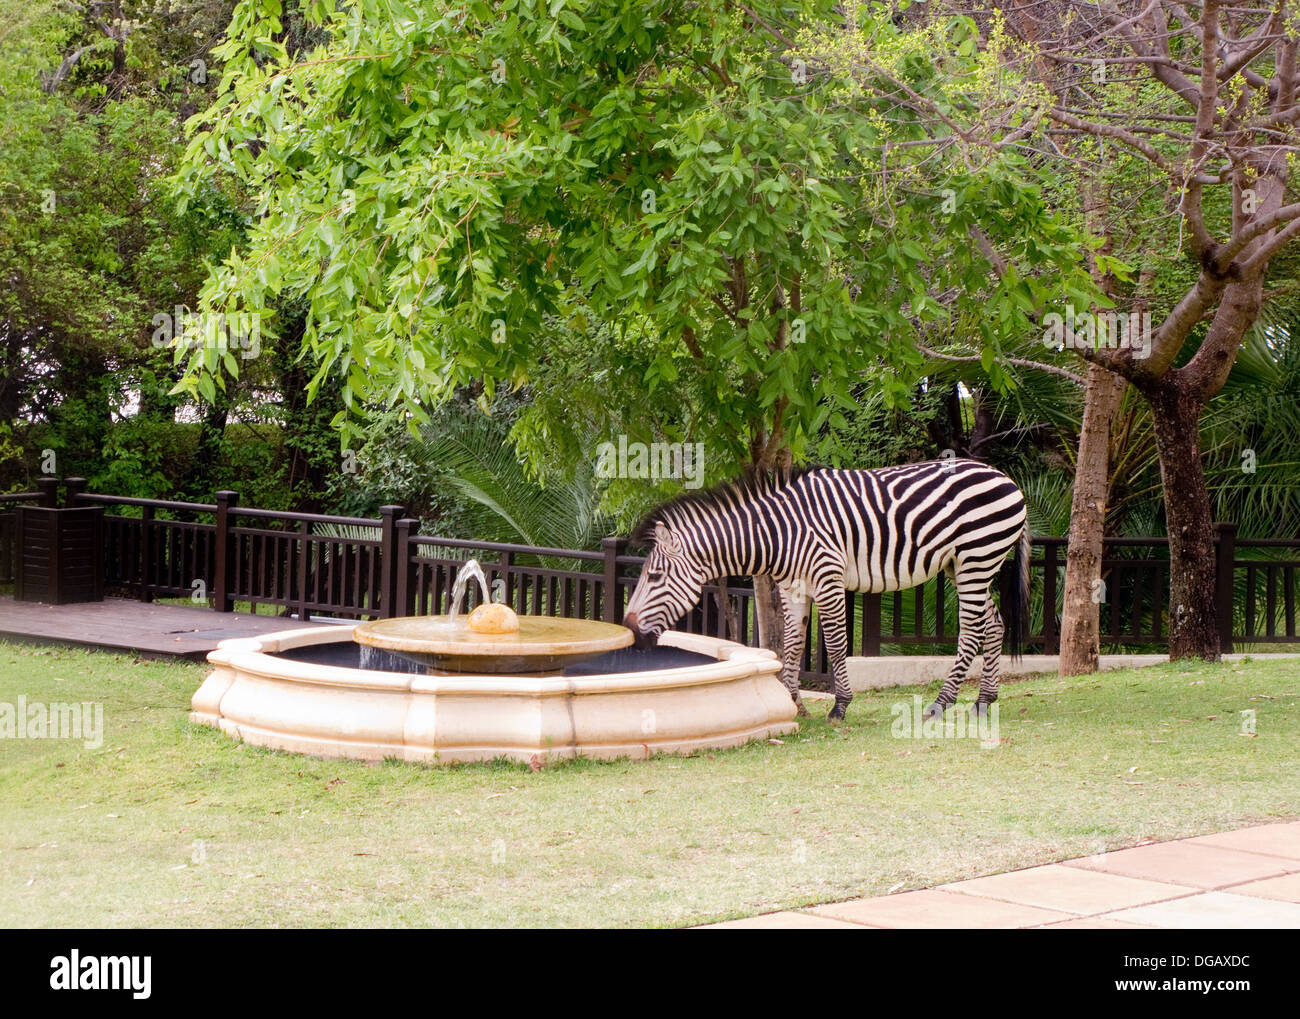 A zebra drinking water from a fountain, Royal Livingstone Hotel, Zambia Africa; Concept wild animals interaction with man - Stock Image